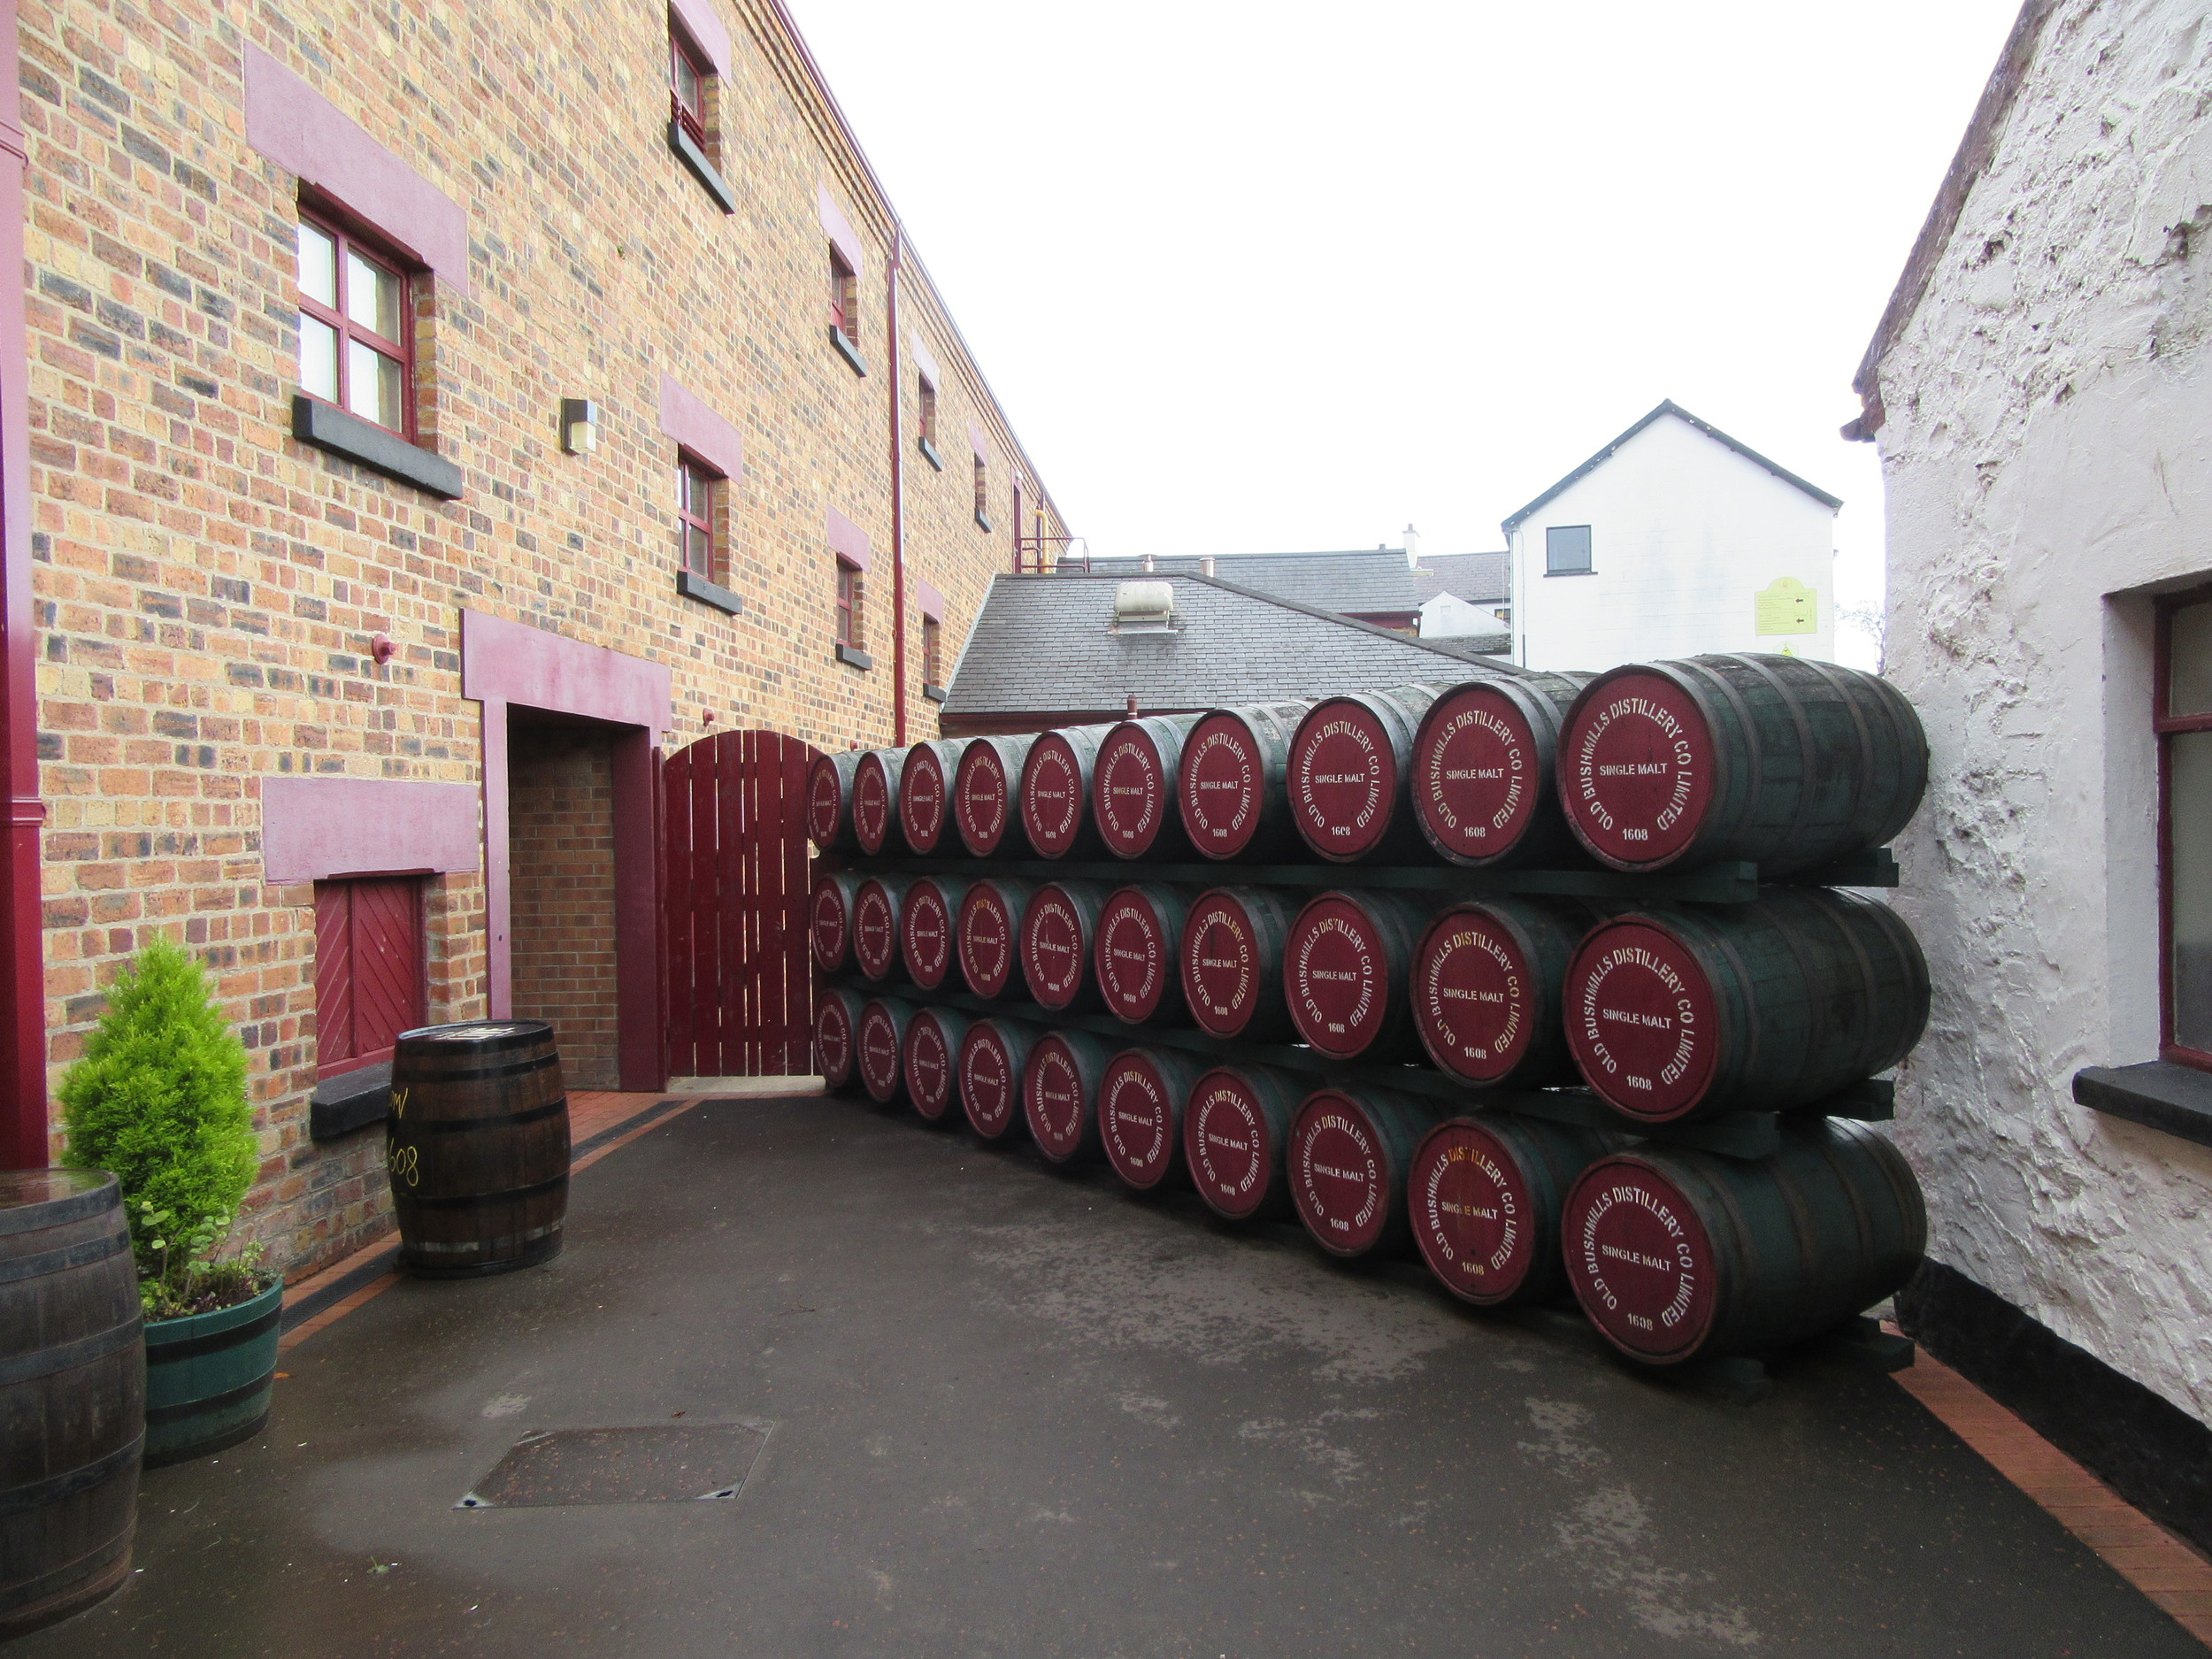 Old Bushmill's distillery - the world's oldest. It was granted its licence in 1608.